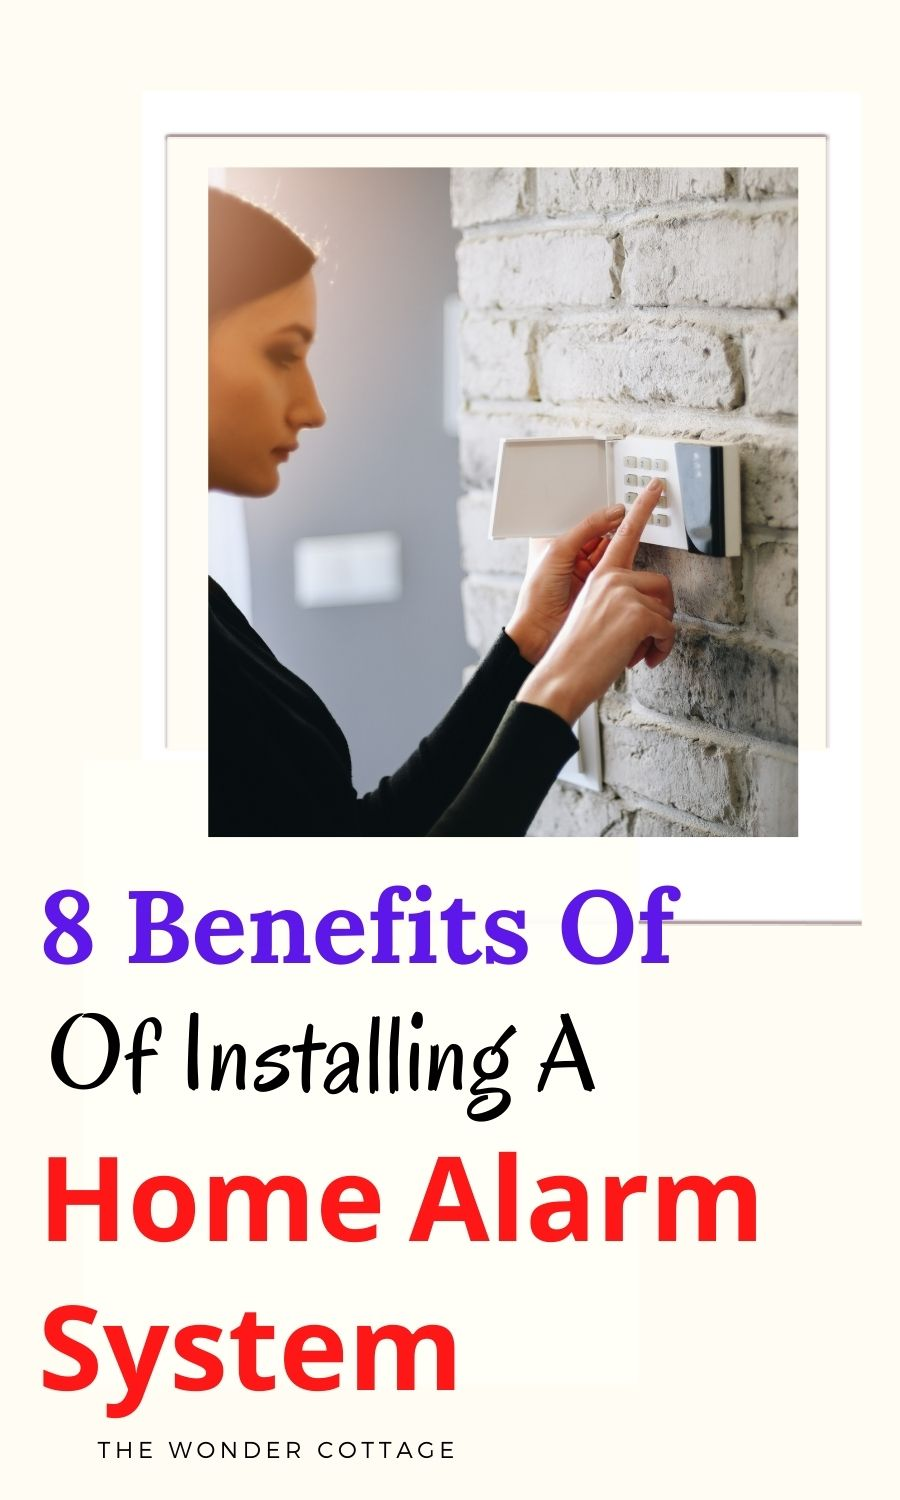 8 benefits of installing a home alarm system